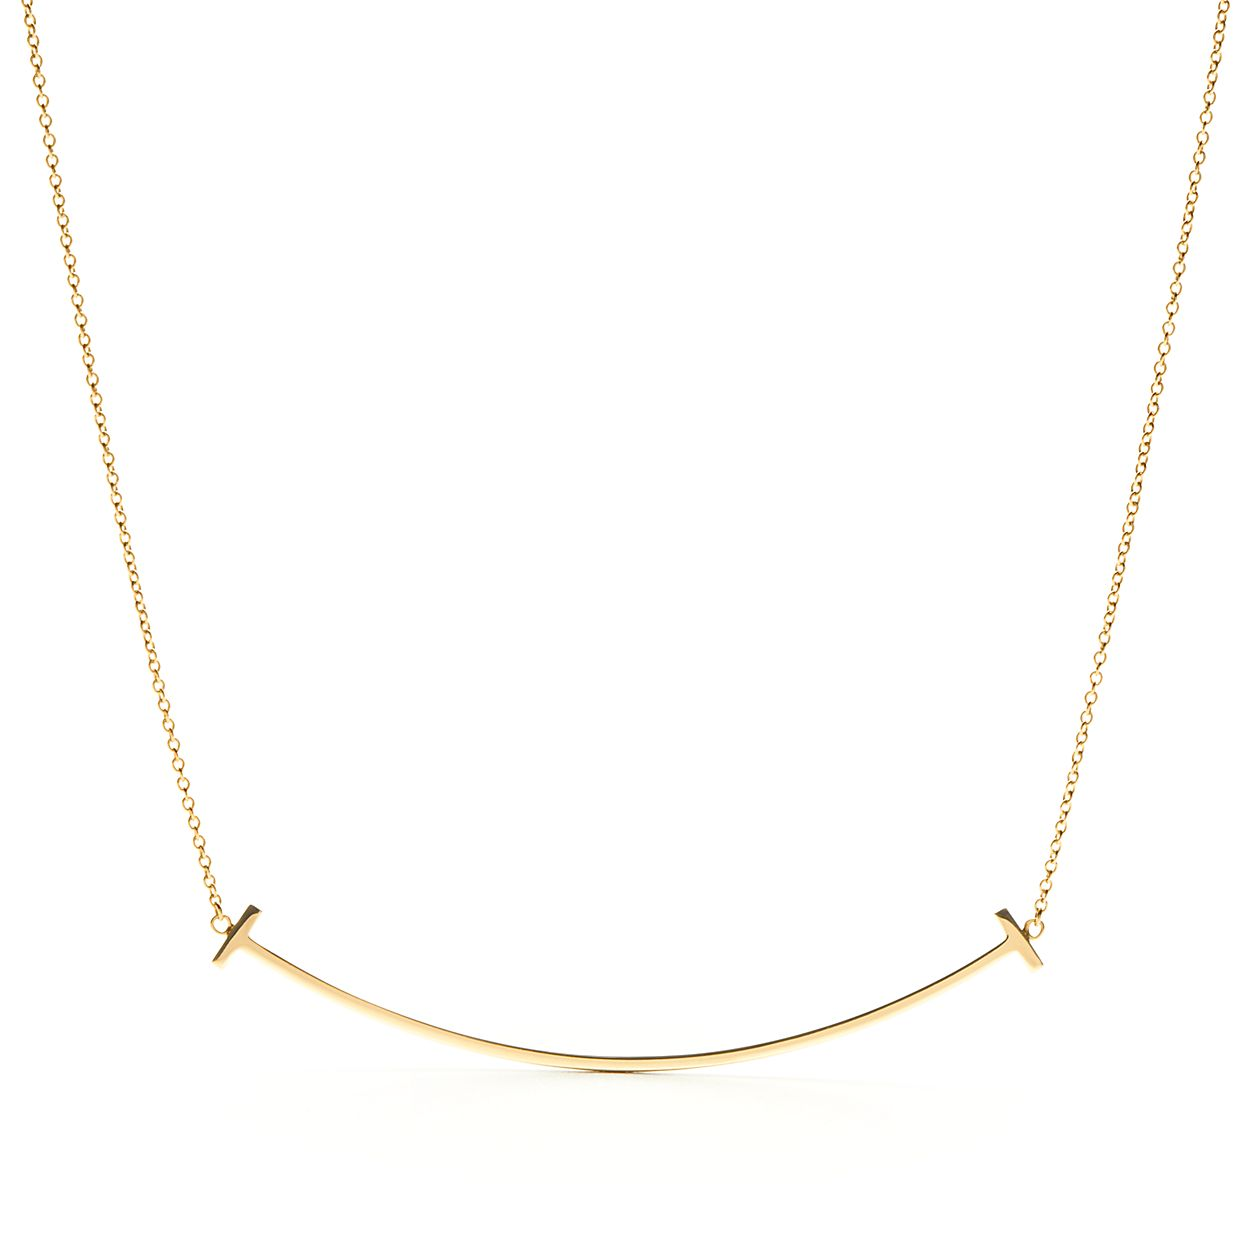 triangle ambrosia products necklace medium elongated druzy gold n